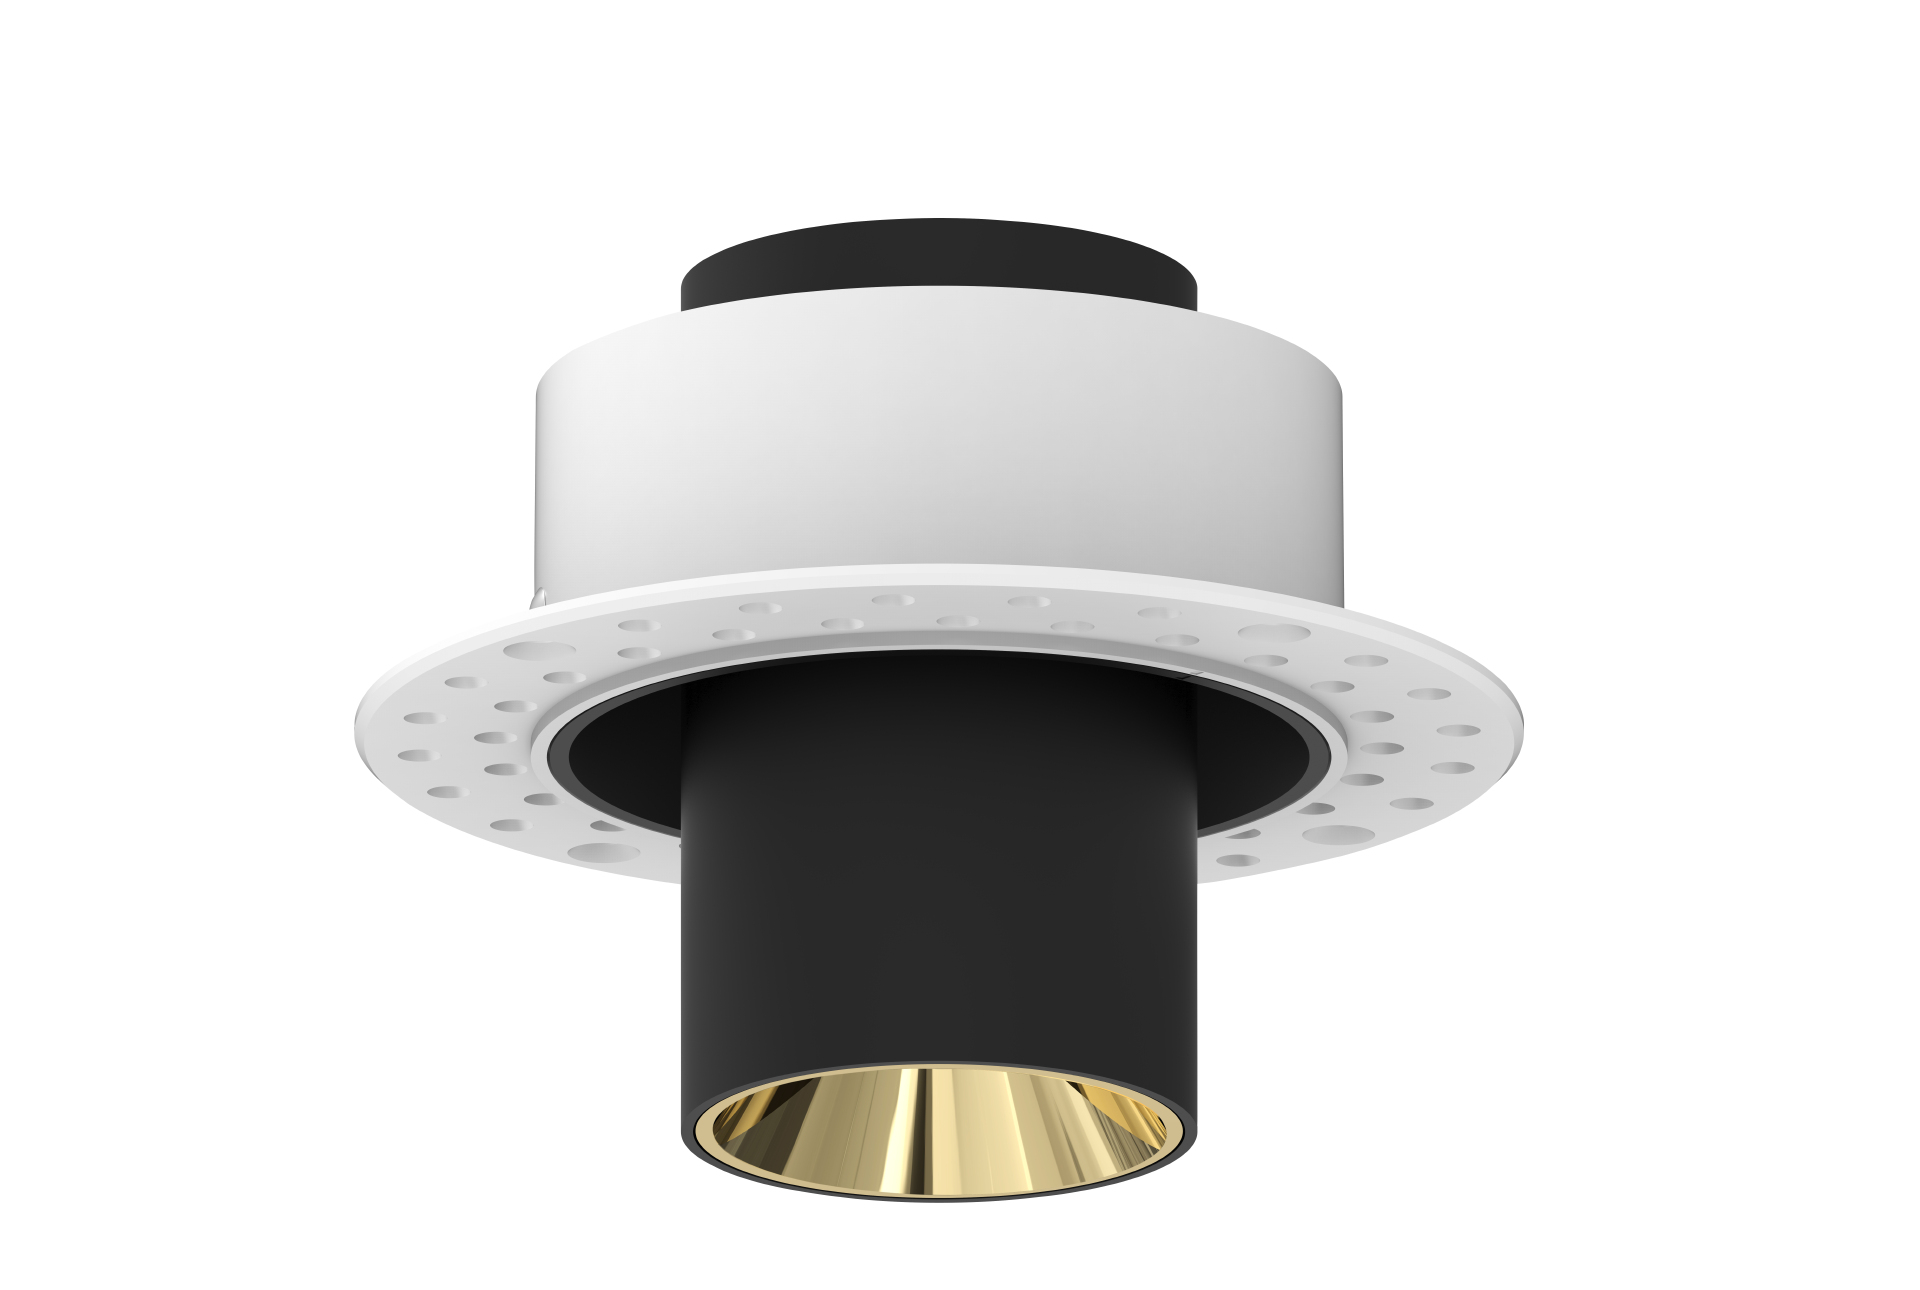 ADJ-02 SERIES DOWNLIGHTS